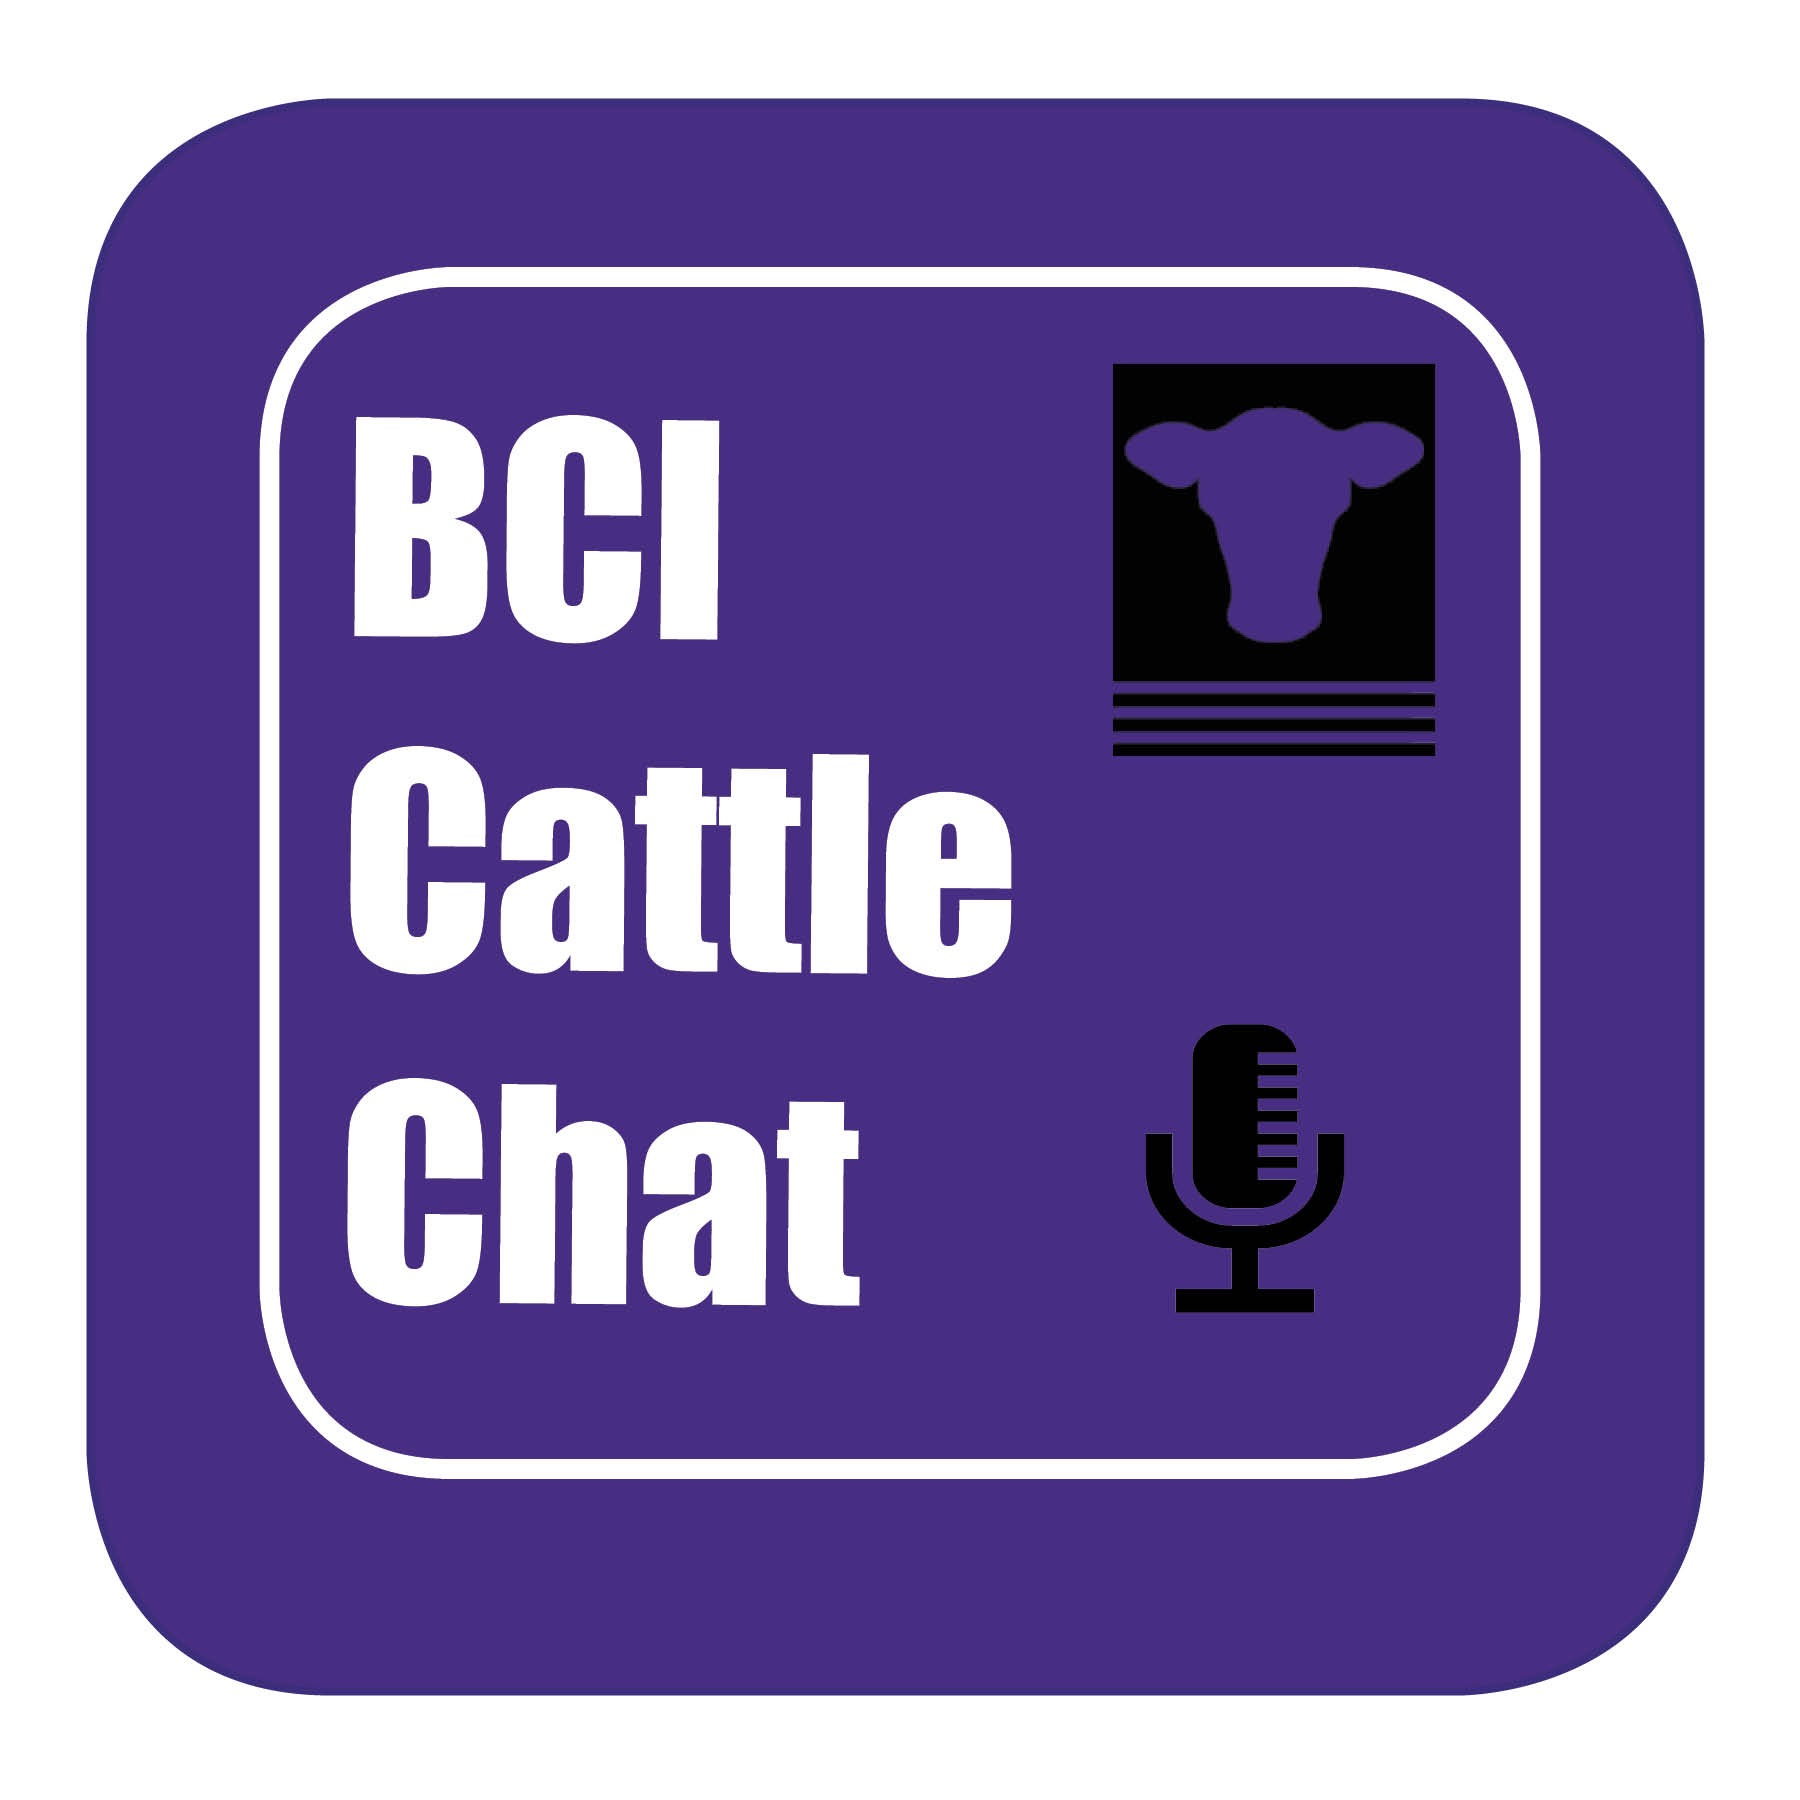 BCI Cattle Chat - Episode 25